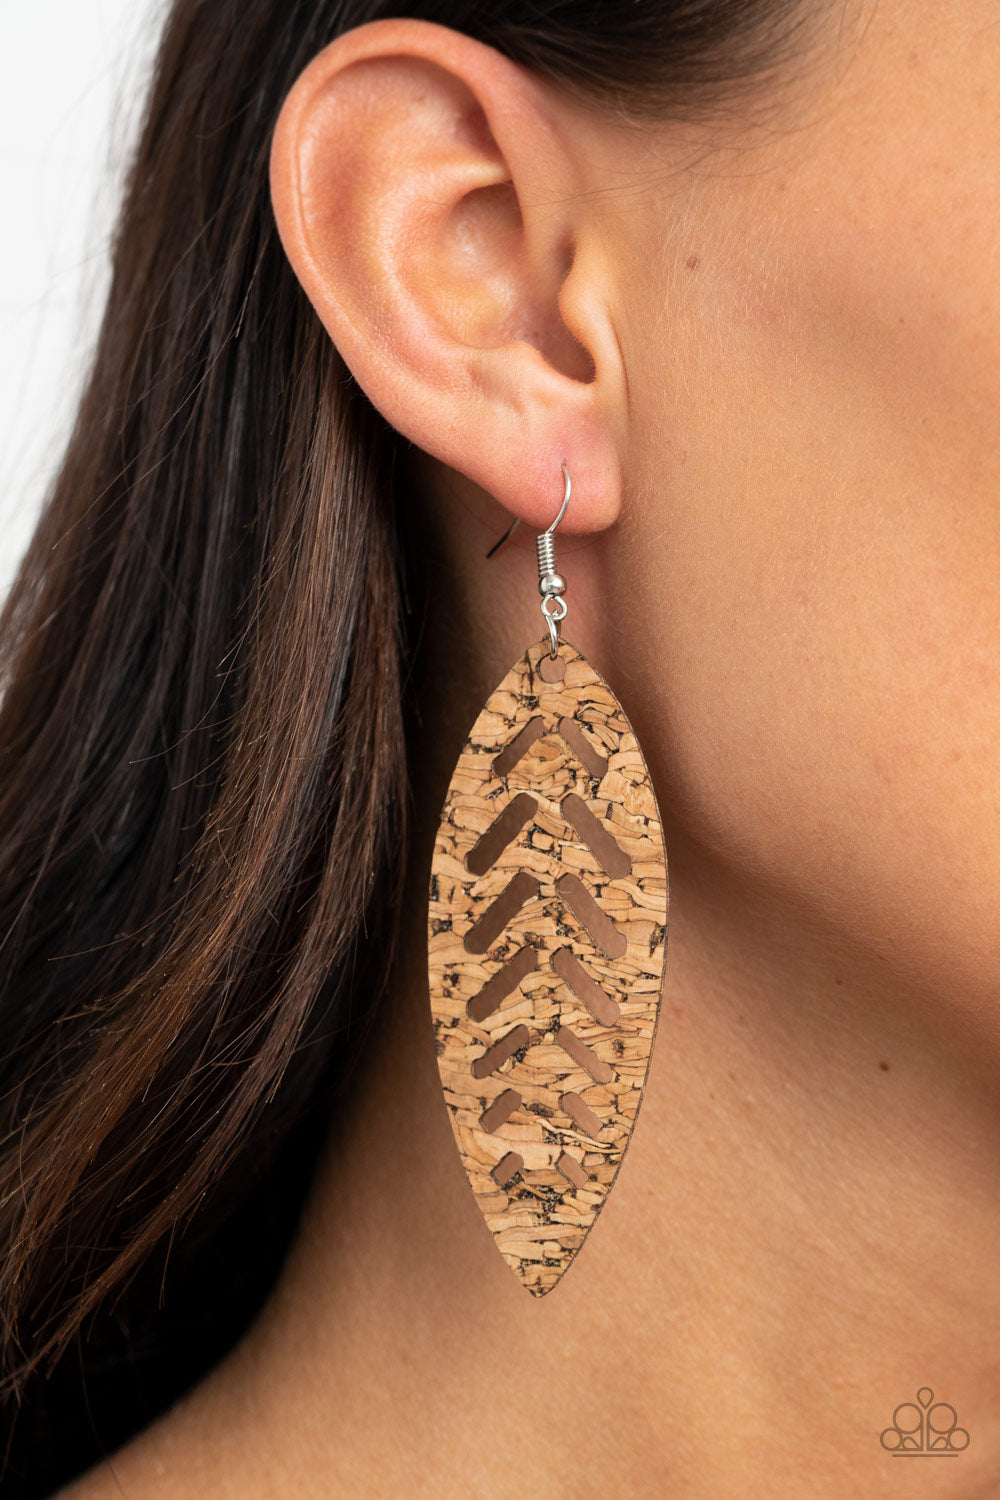 Paparazzi Jewelry & Accessories - You're Such a CORK - Earrings. Bling By Titia Boutique